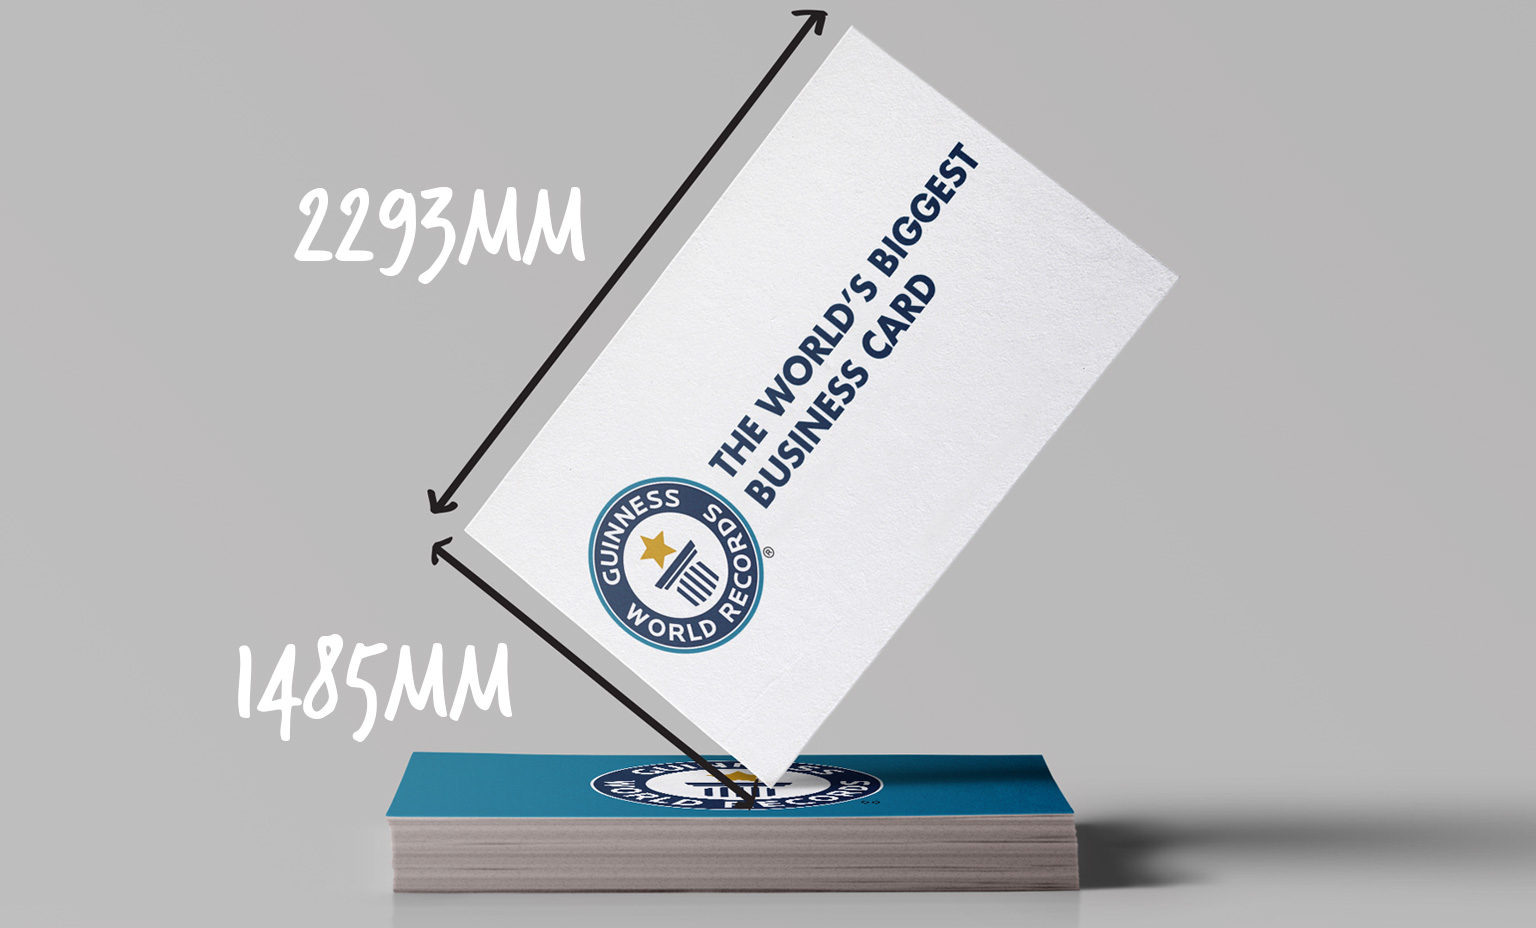 world's largest business card replica with dimensions